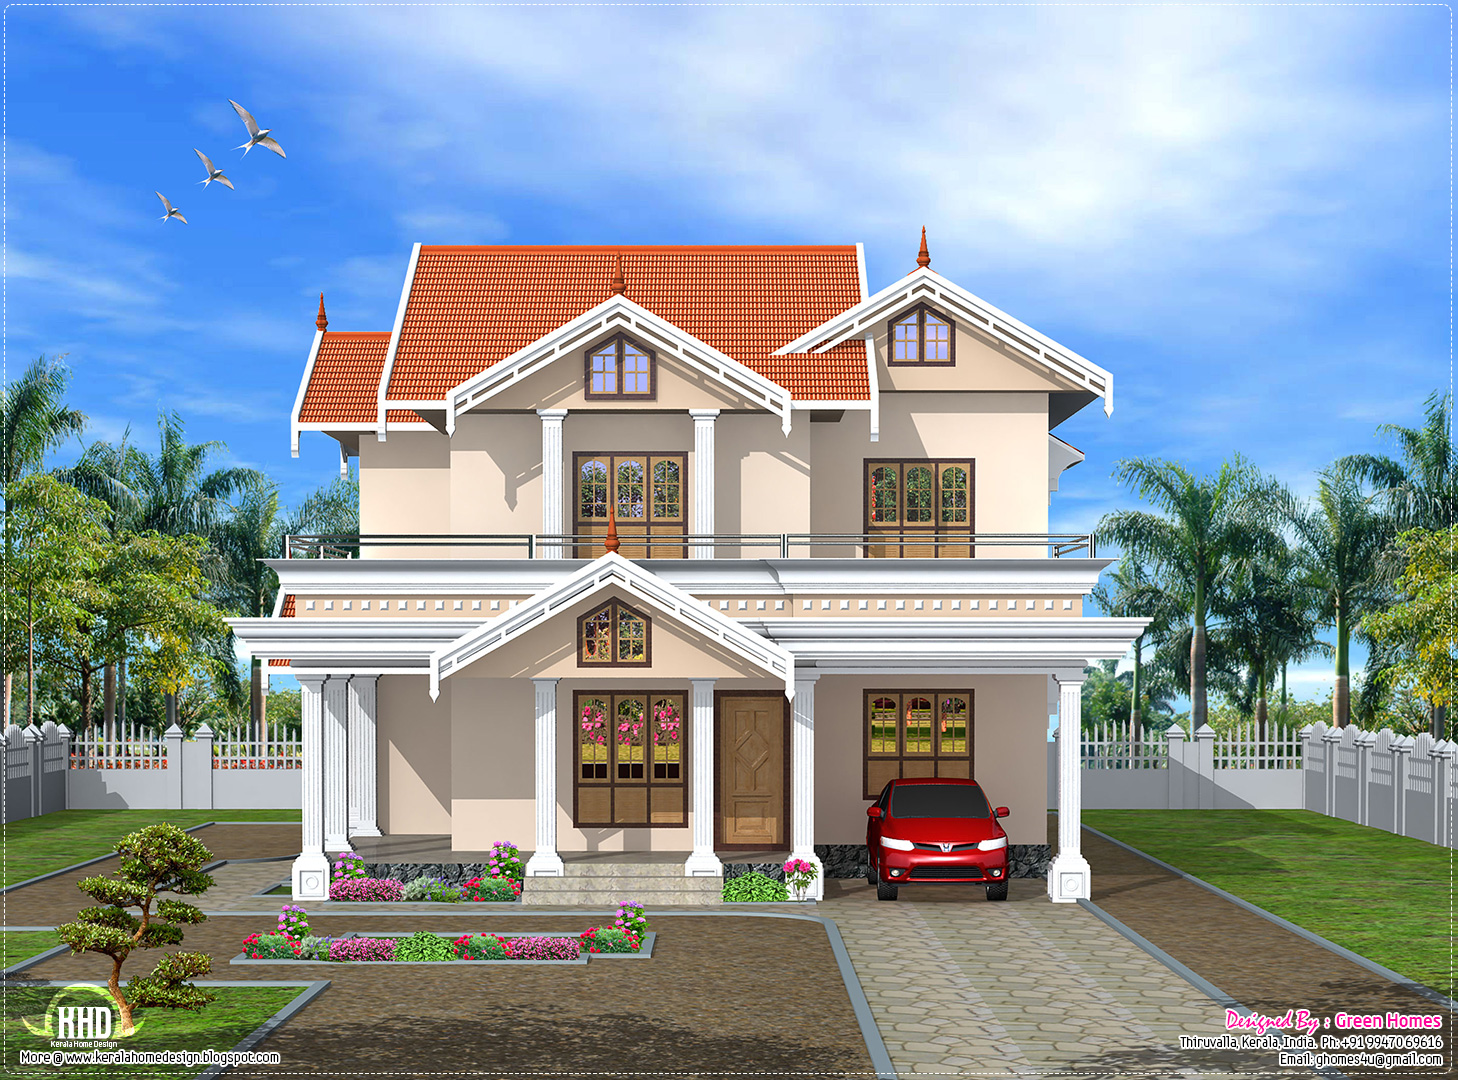 yards 4 bedroom cute home design by green homes thiruvalla kerala